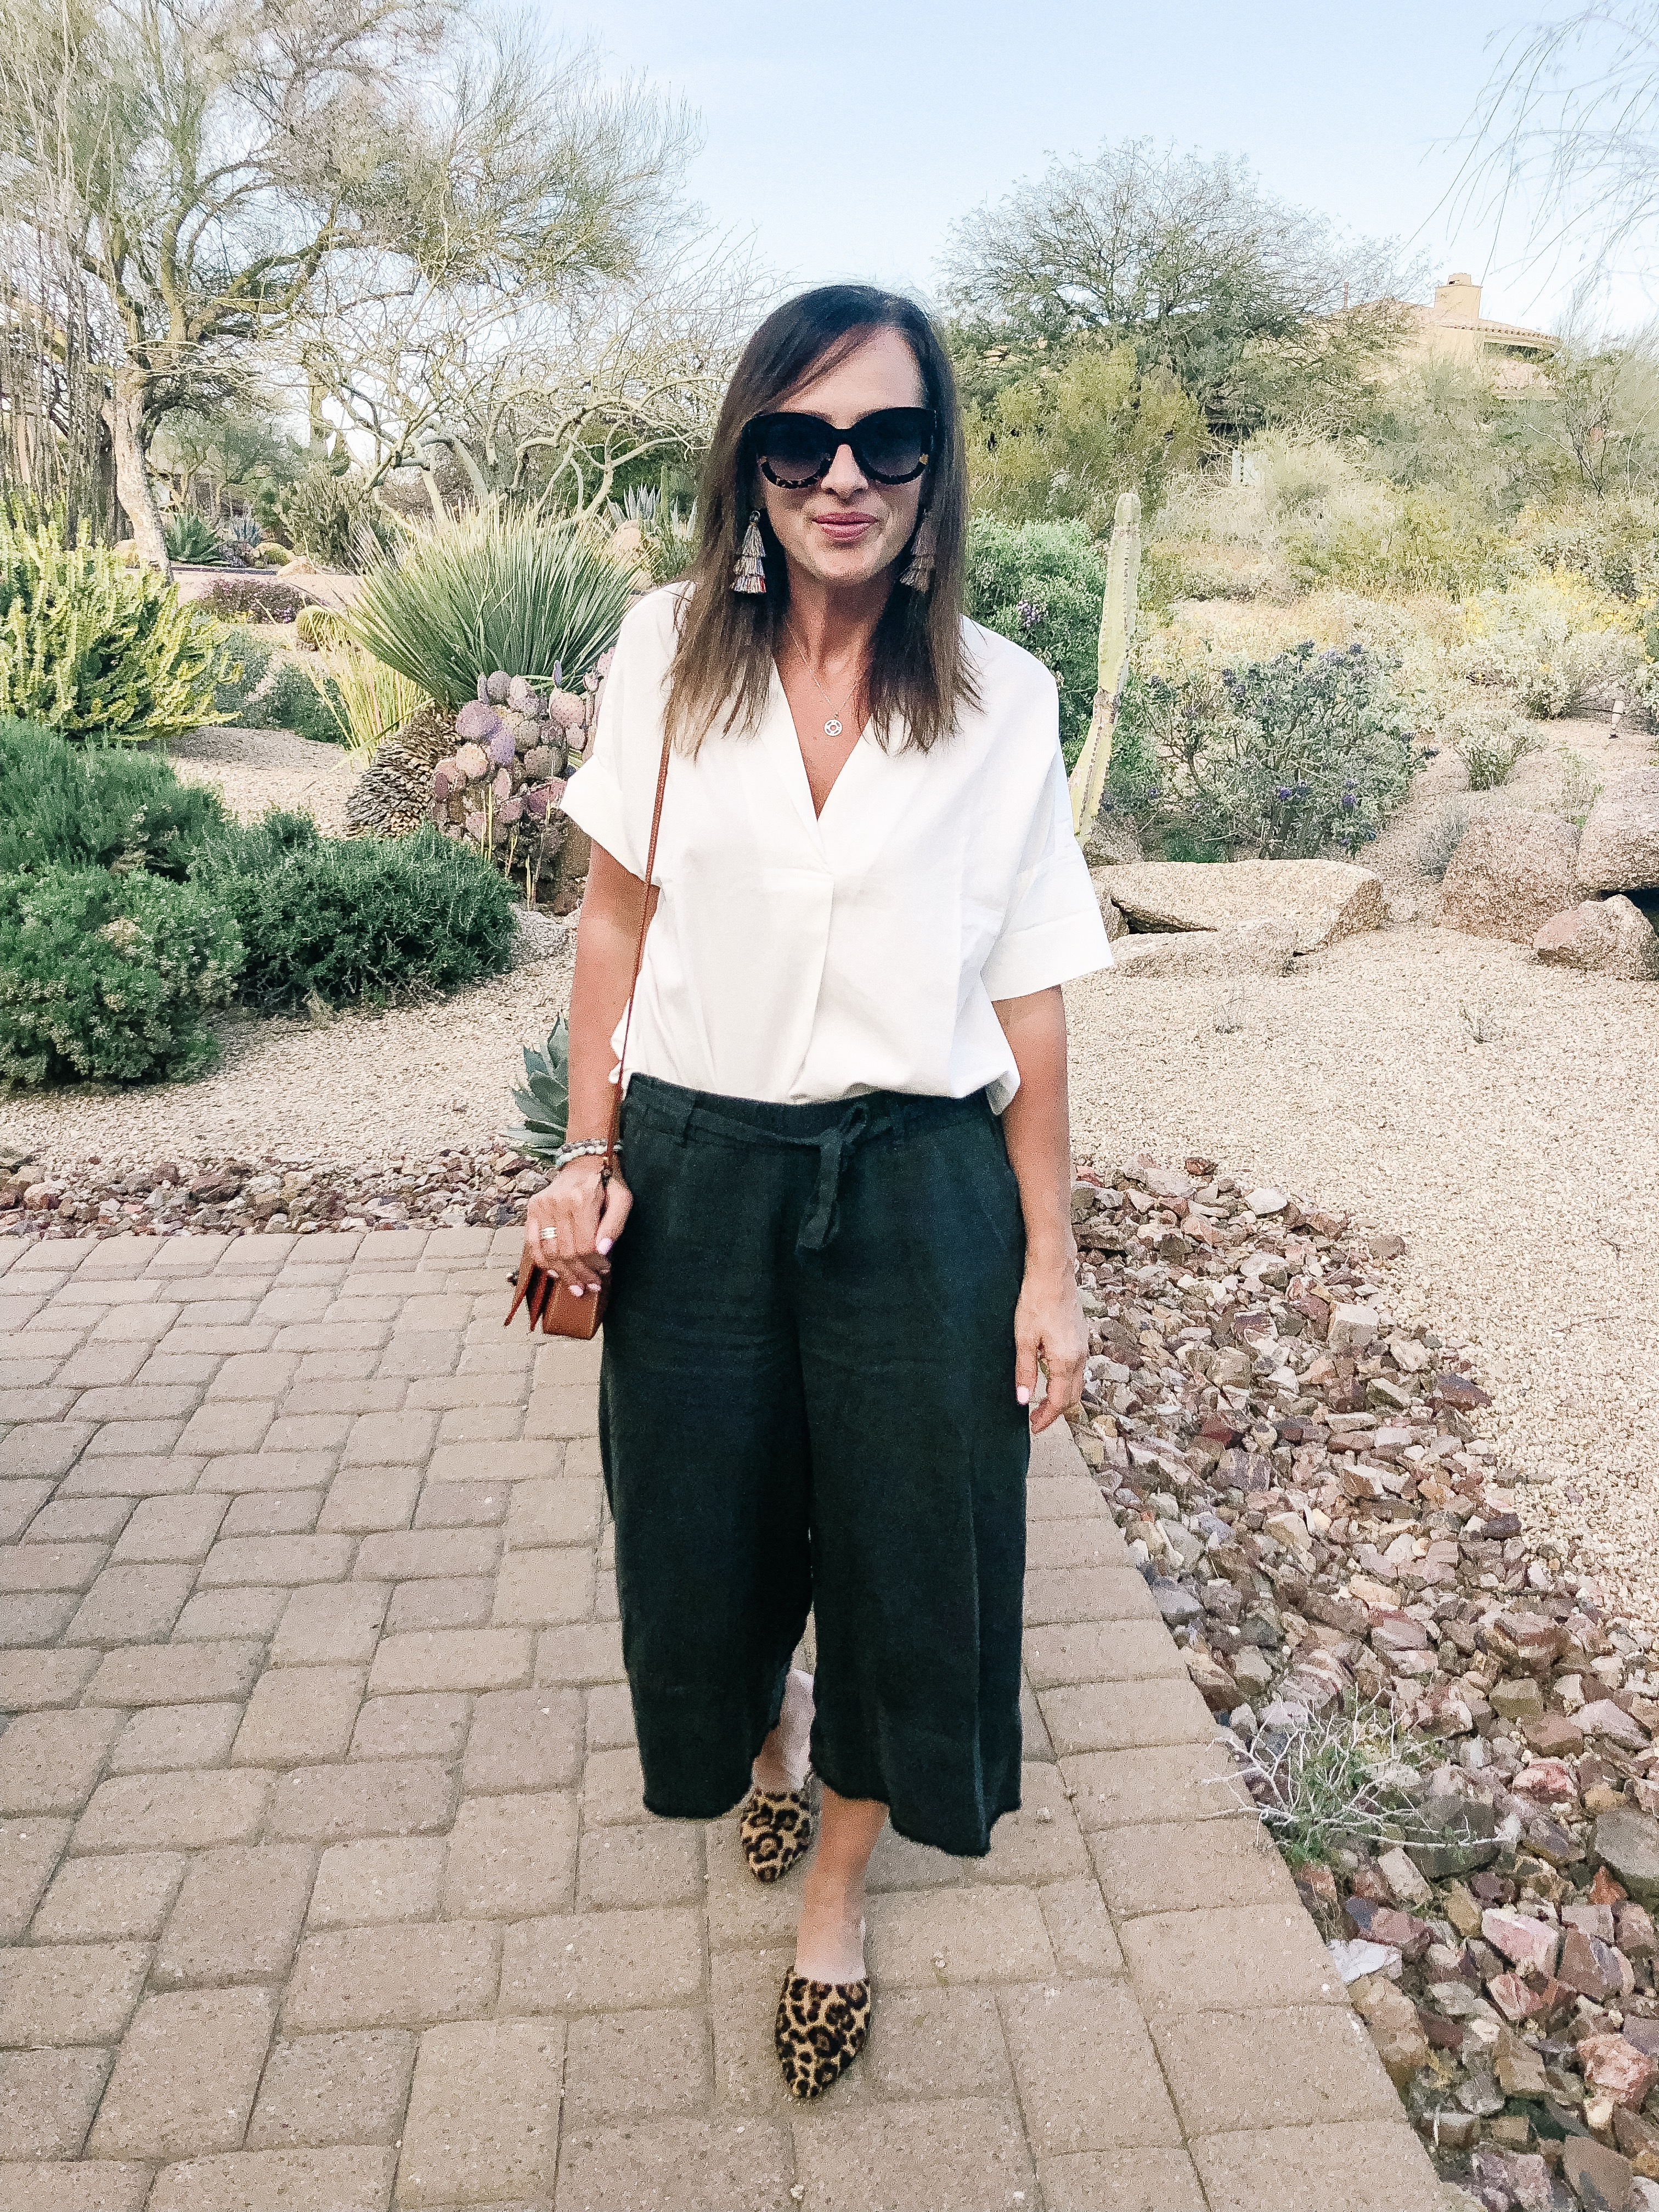 """70995dbb340b In the words of the completely stylish Jenna Lyons, """" As far as I'm  concerned, animal print IS a neutral"""". She may have come to this conclusion  much sooner ..."""